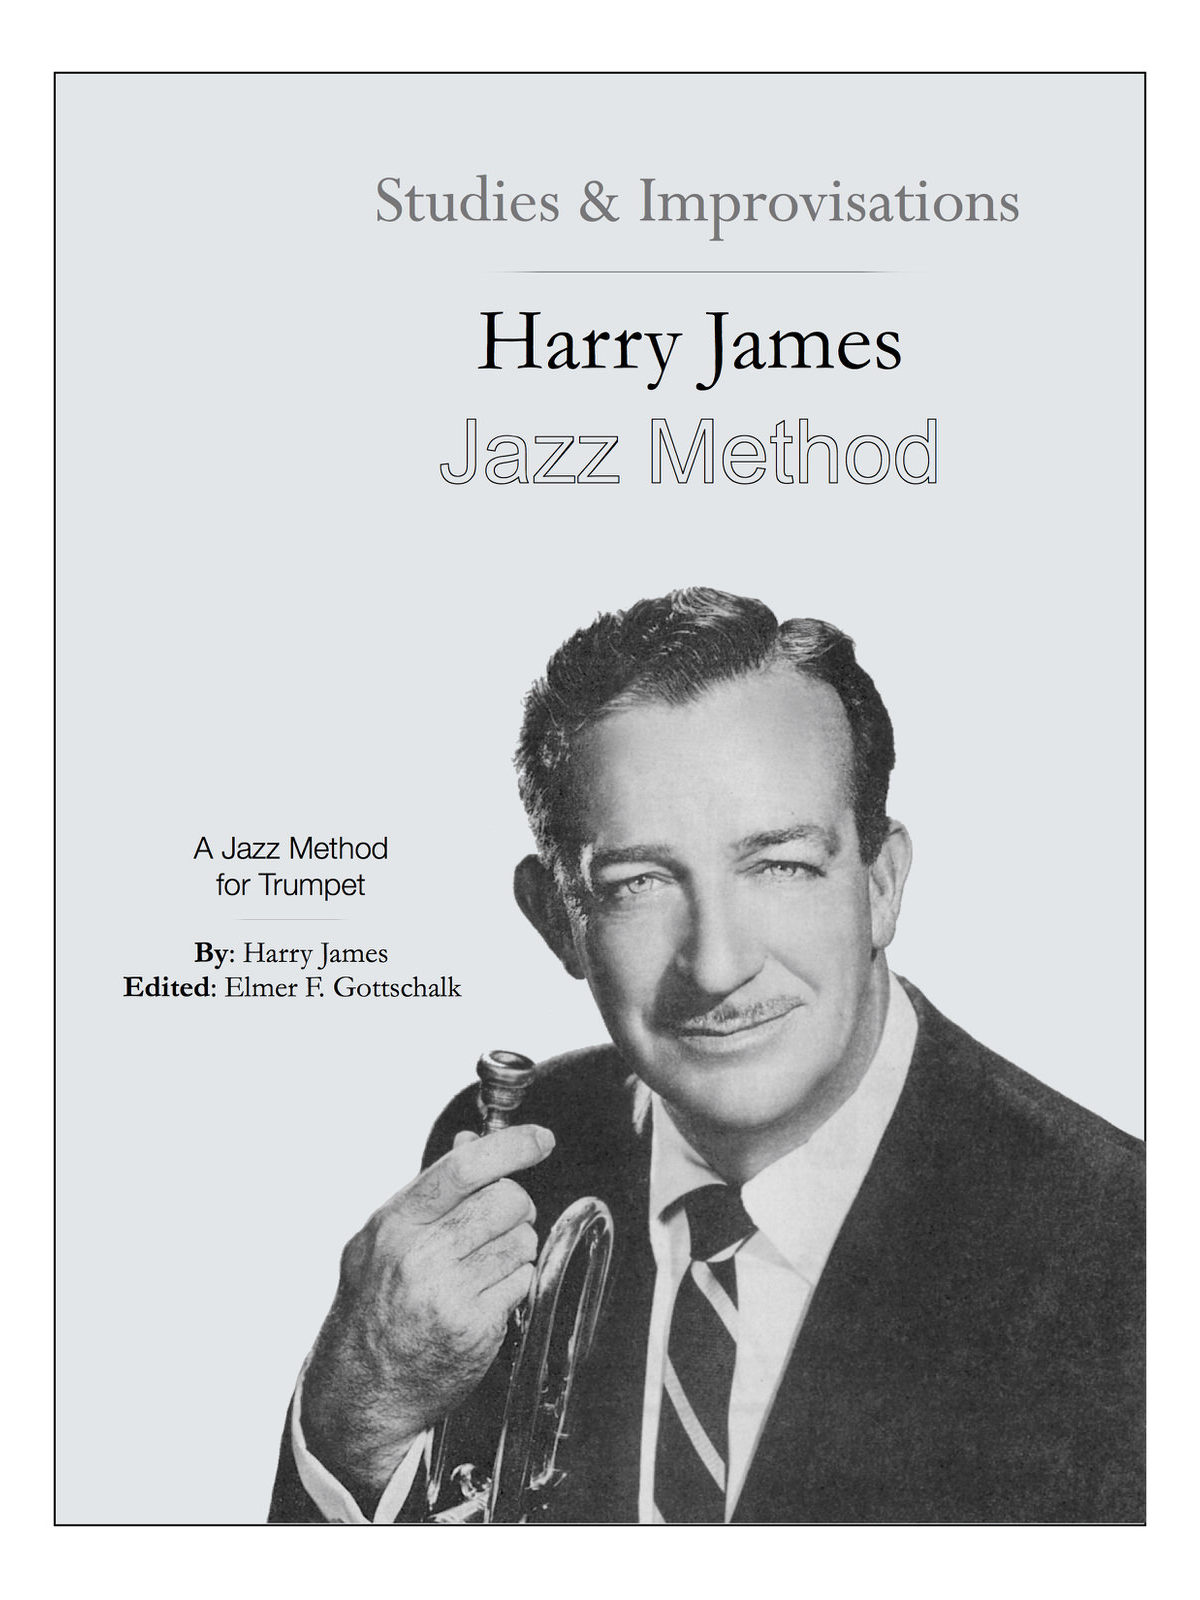 james-harry-studies-and-improvisations-for-trumpet